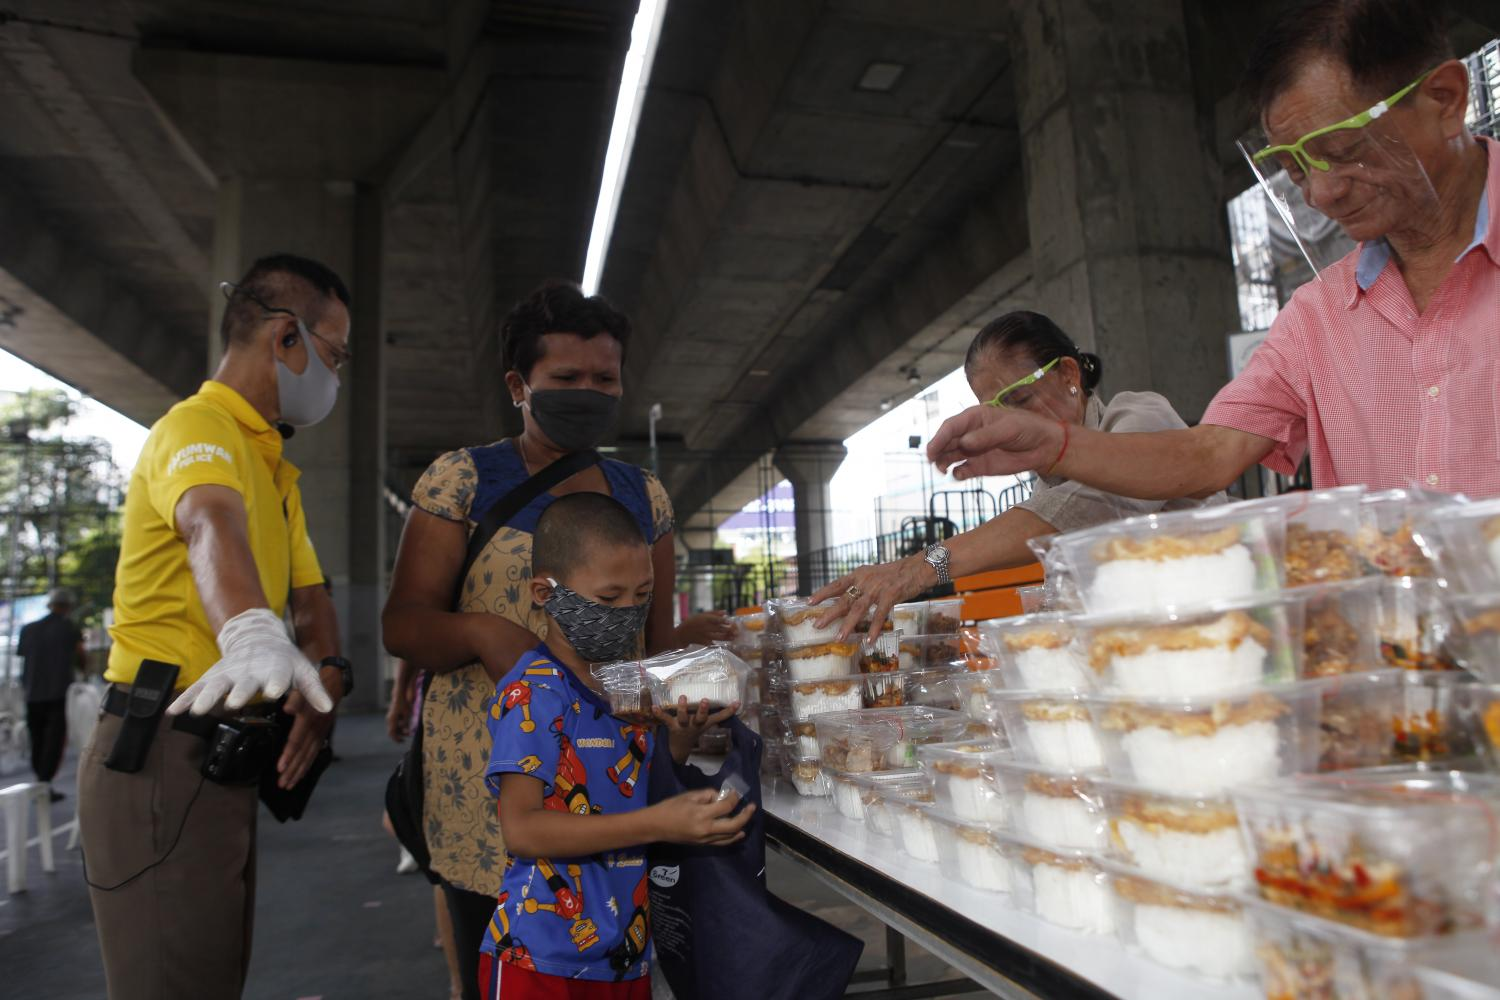 A young boy receives donated food at a sports ground in Pathumwan district of the capital. Covid-19 has unleashed an unprecedented economic shock in Thailand. (Photo by Nutthawat Wicheanbut)